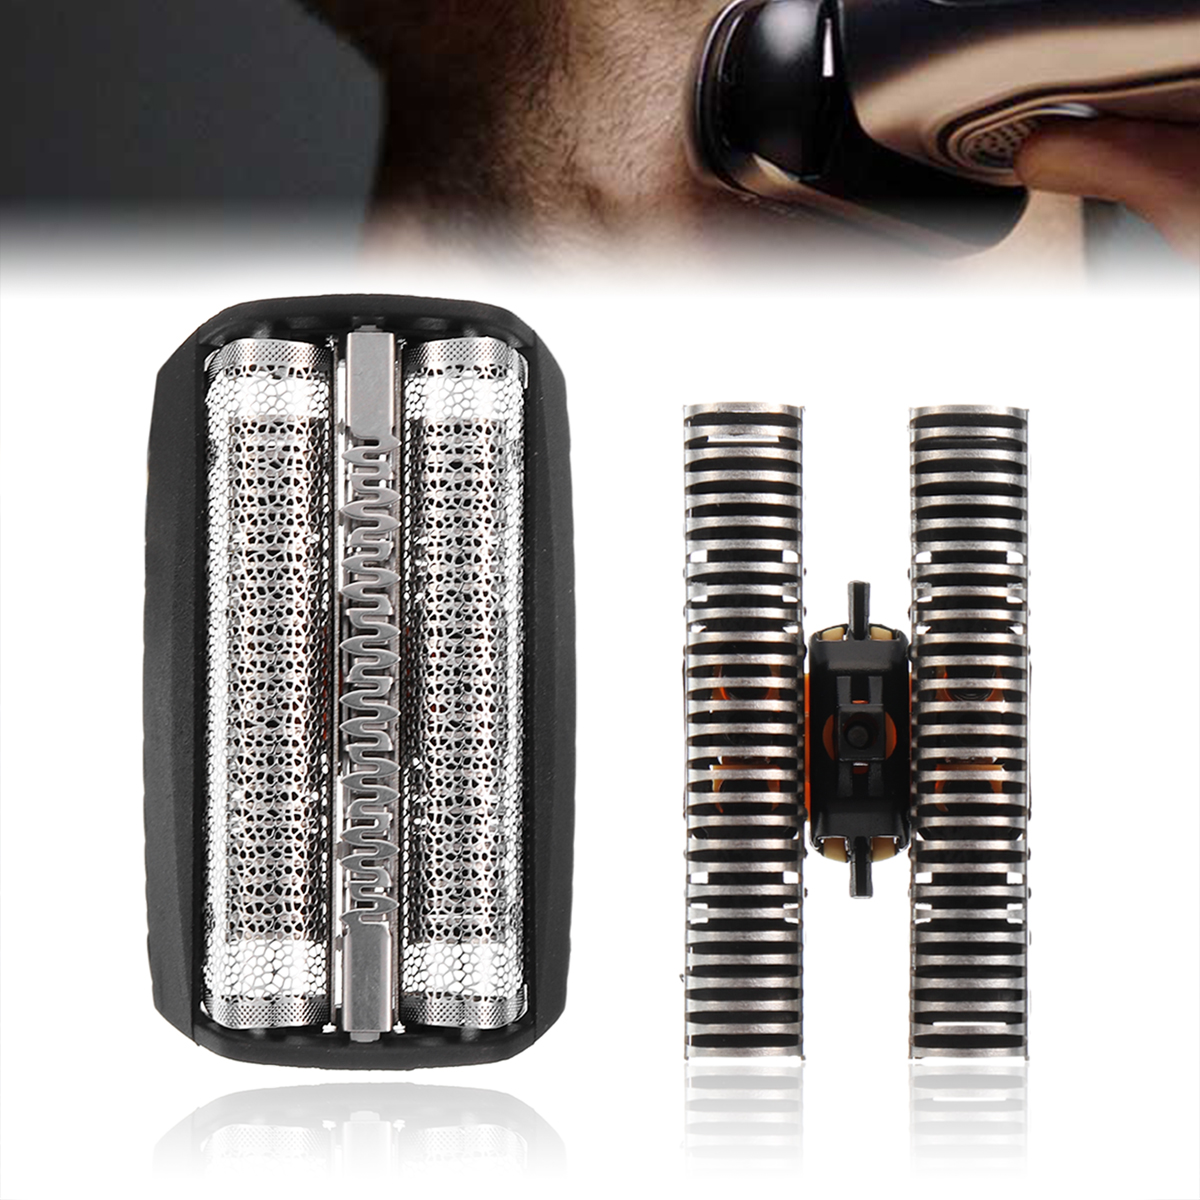 1 Set Electric Shaving Head Shaver Shearing Foil 30B For BRAUN 310 330 Series 3 7000 4000 Replacement Shaver Foil Beard Razor